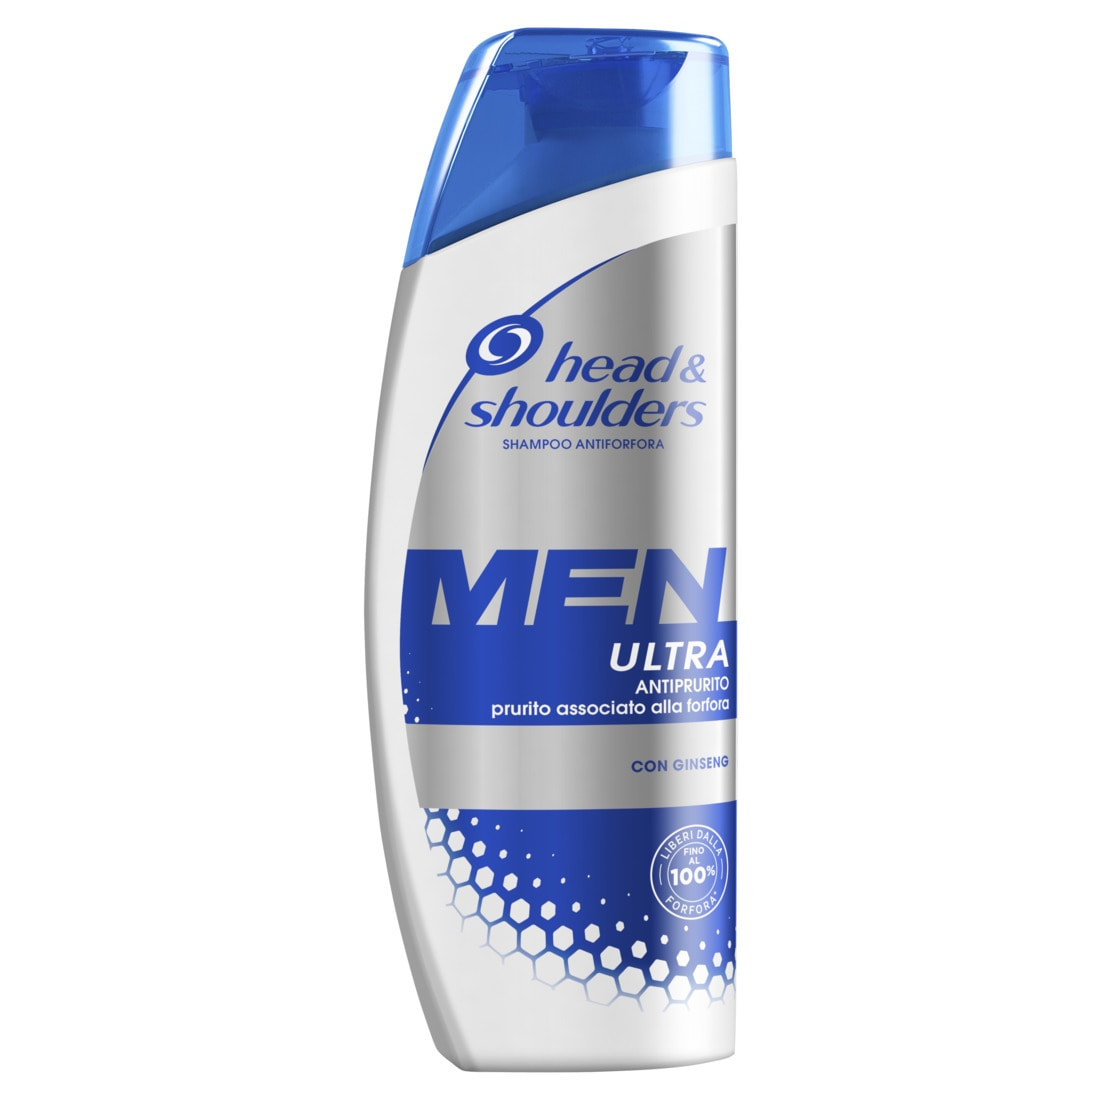 Men Ultra Antiprurito Shampoo